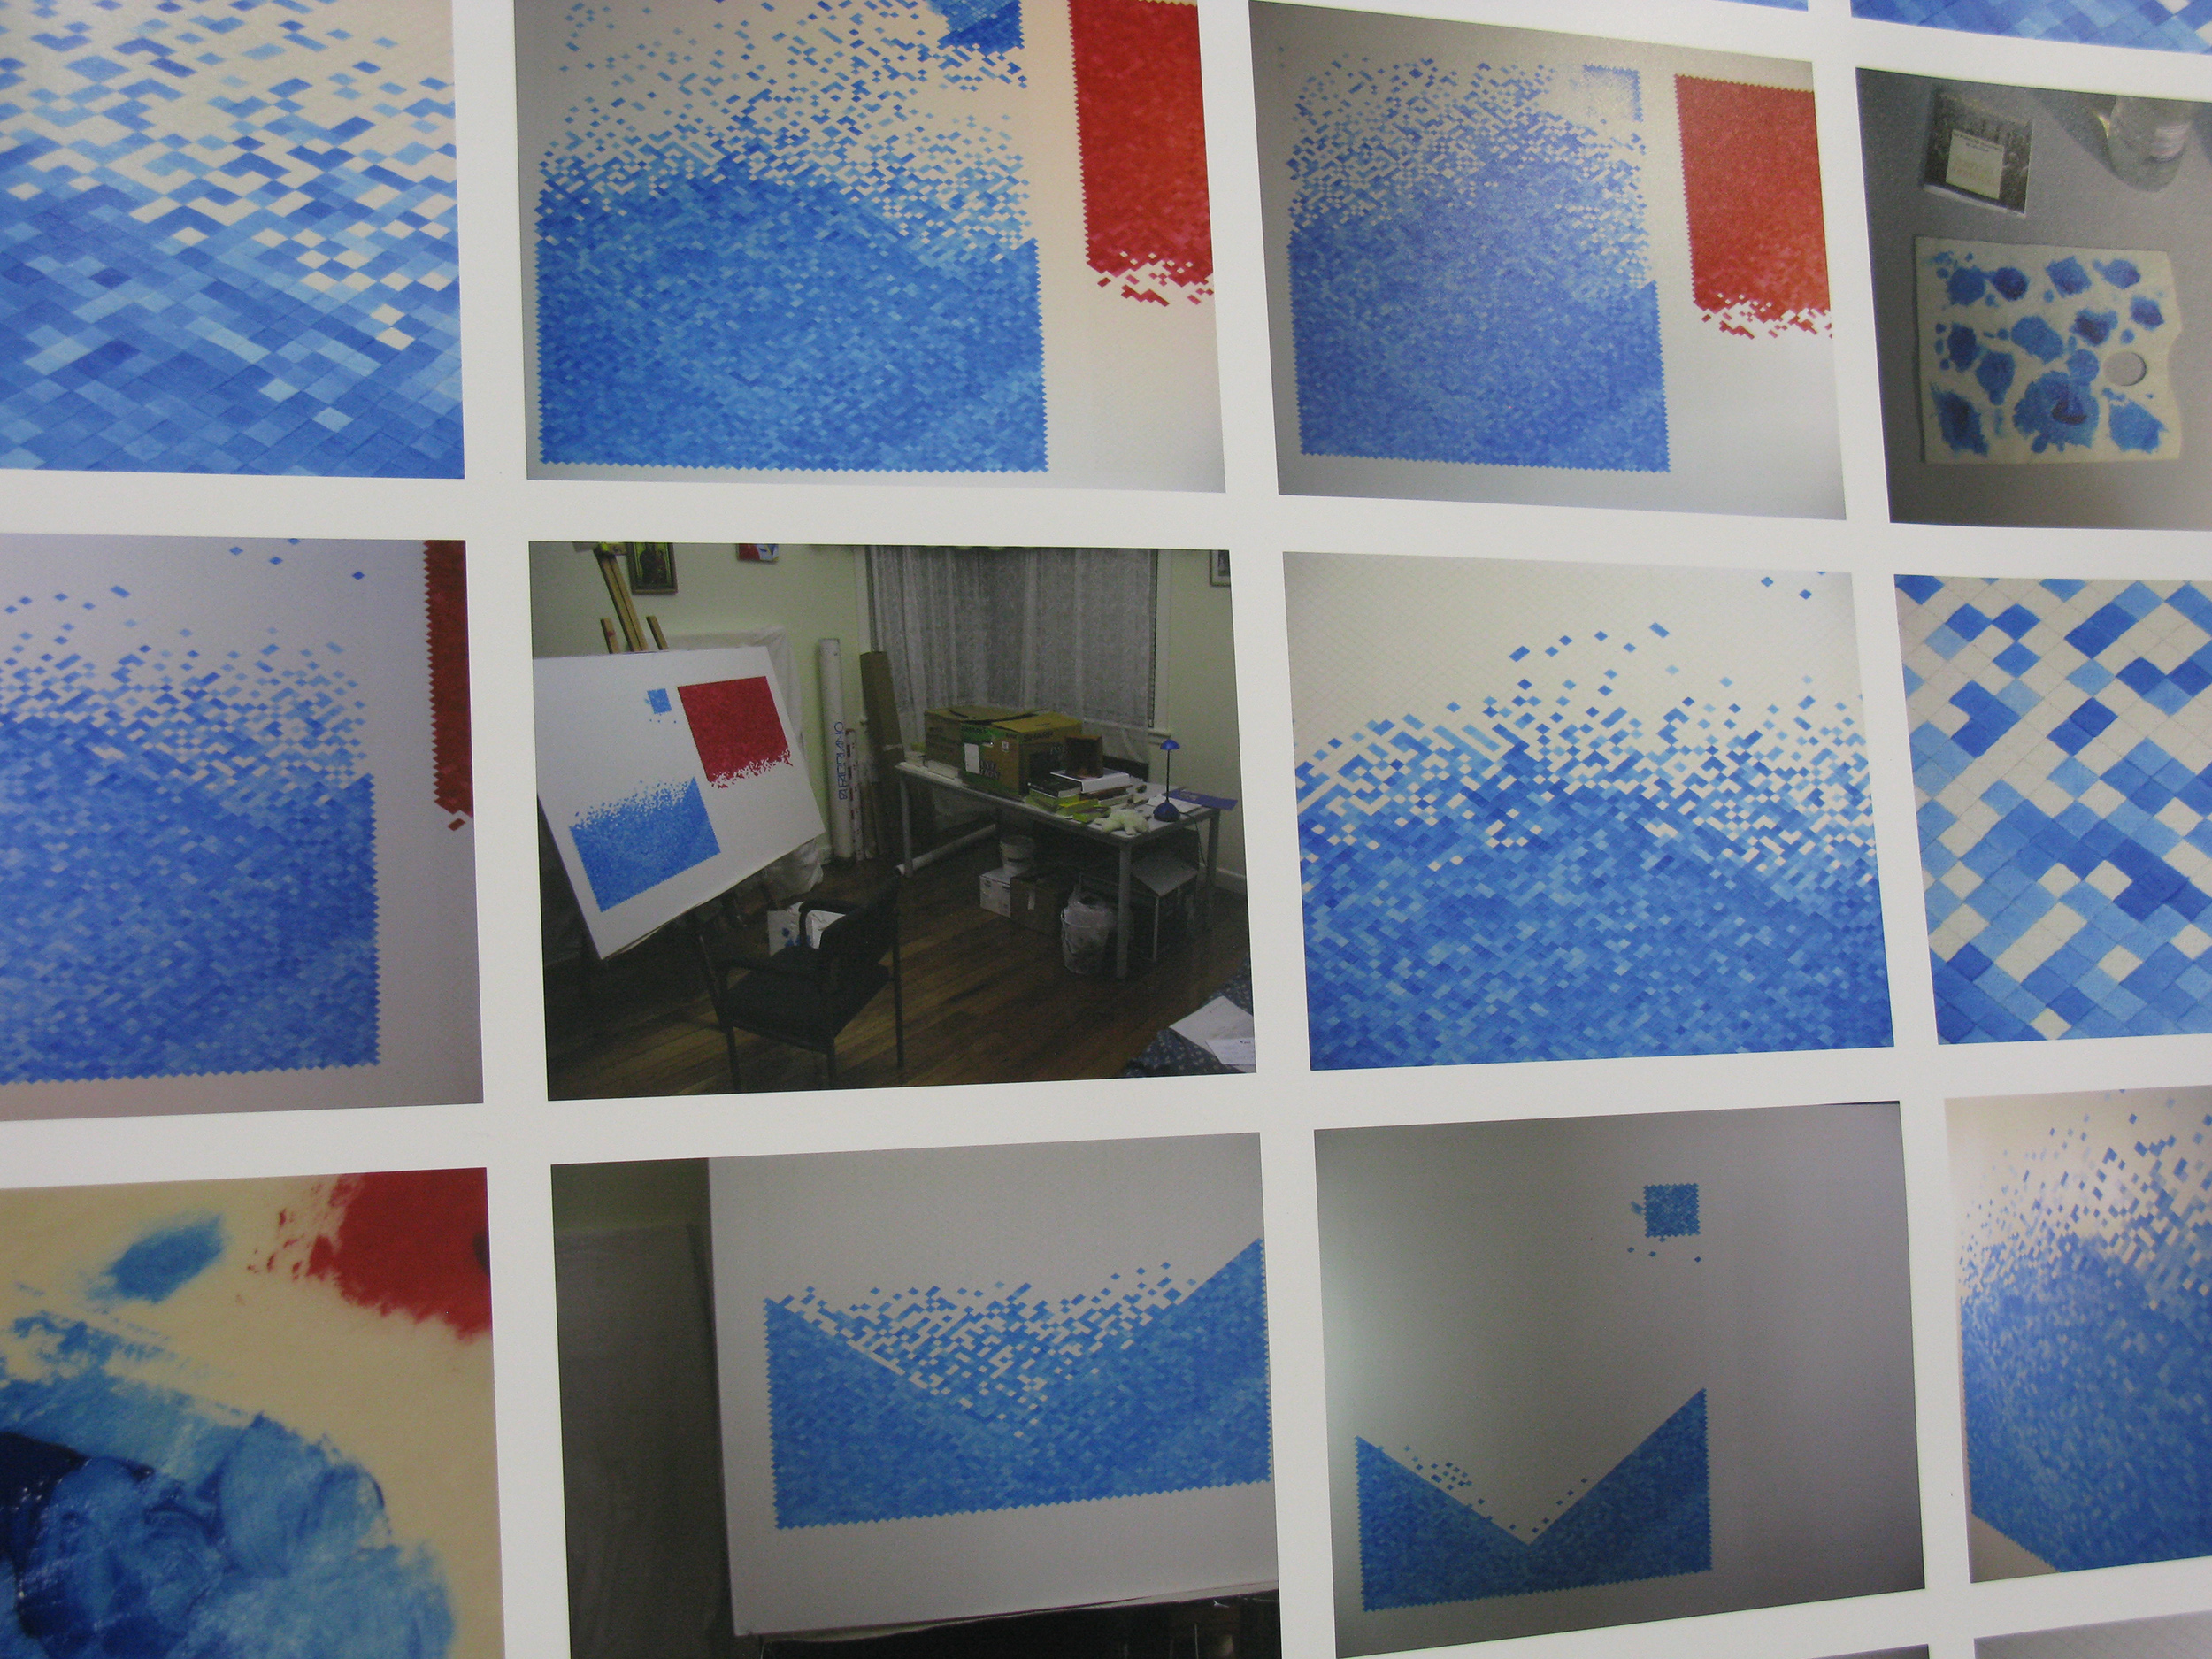 Progress of a painting  (detail), 2010,digital prints.  From  It takes time and it's worth it , Blindside, Melbourne, July 2010.